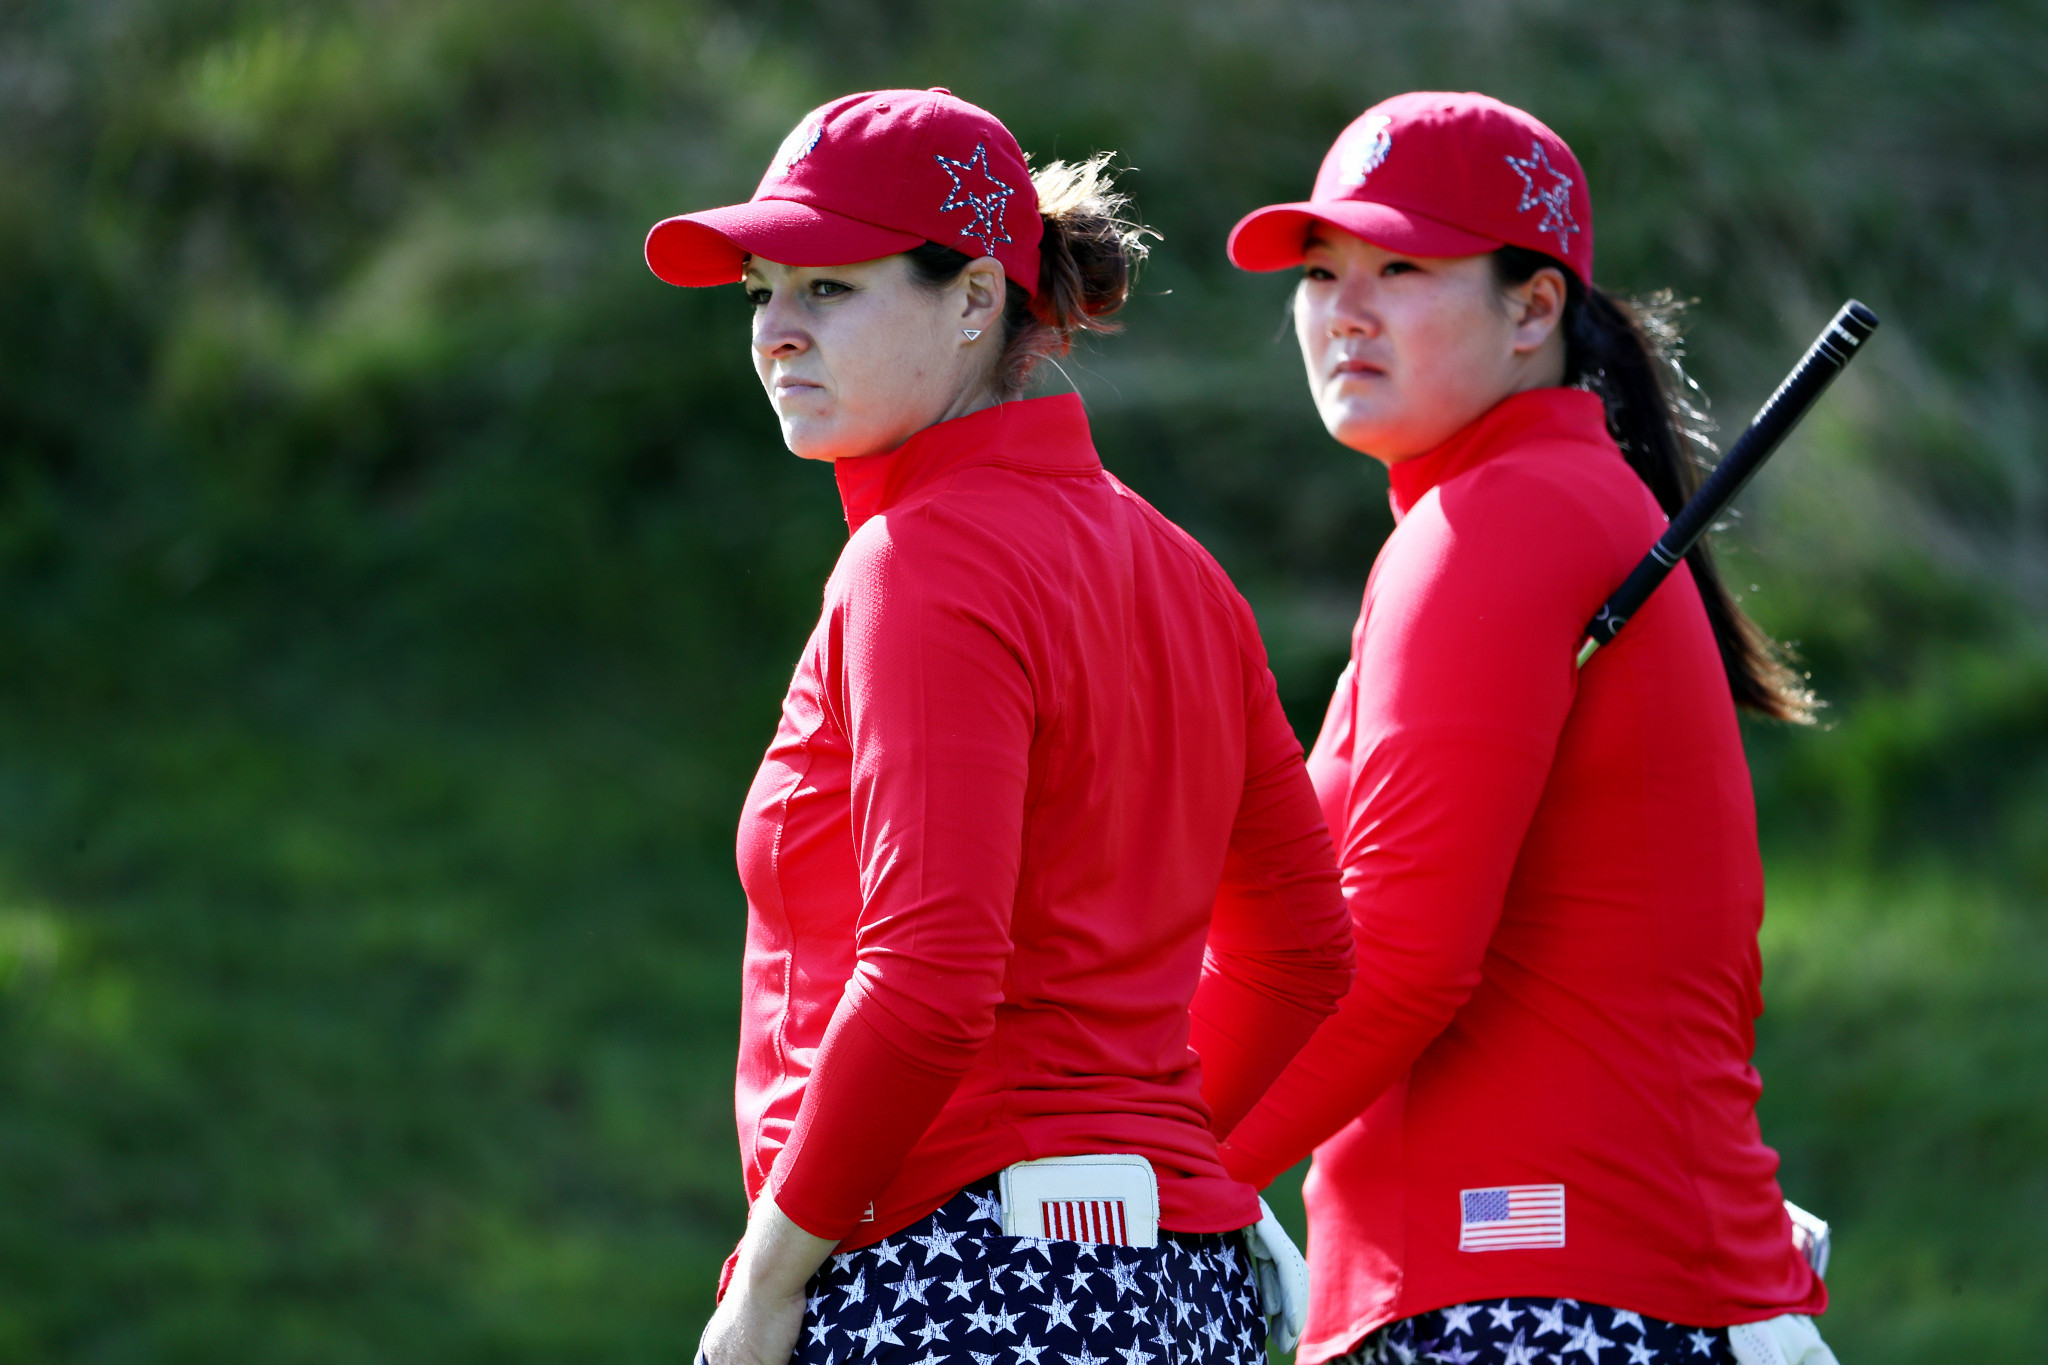 Ally McDonald and Angel Yin equalled the biggest fourballs win in the history of the competition ©Getty Images